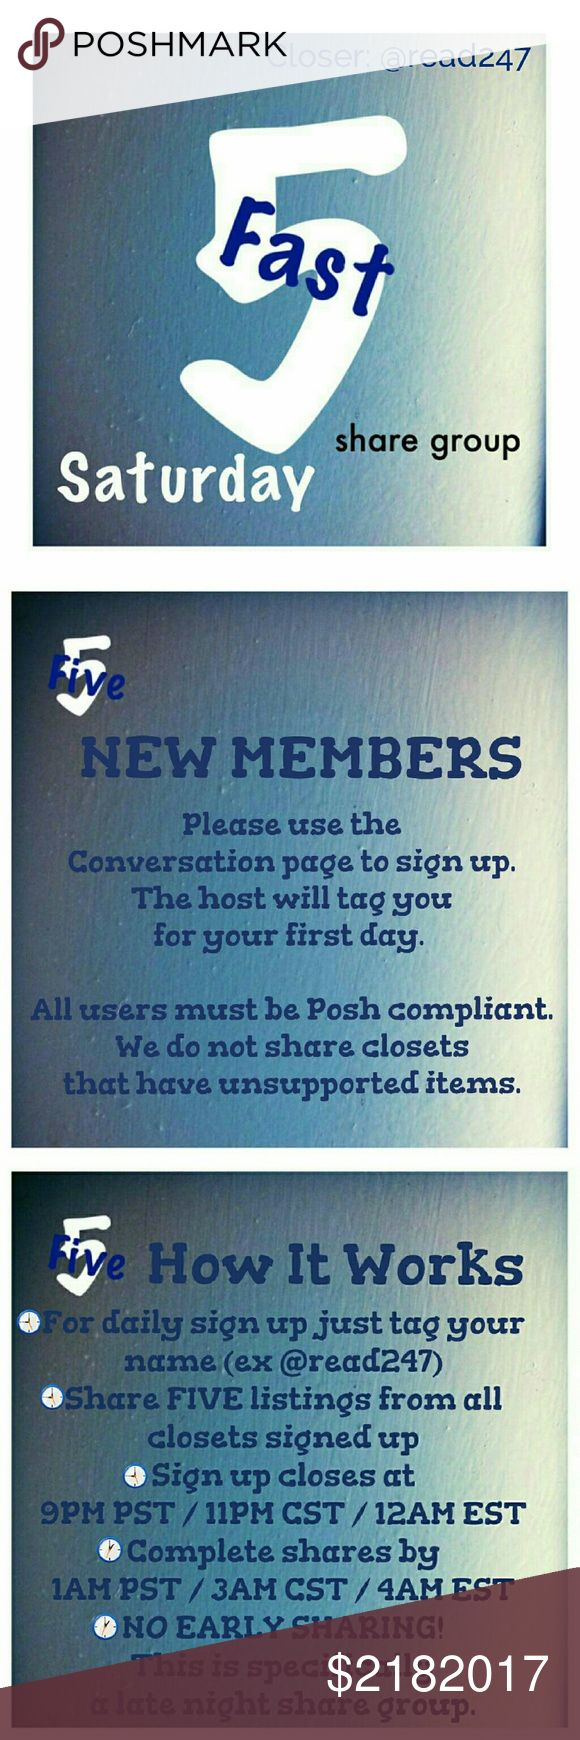 ⏳Saturday, 2/18 - Fast 5 Share Group SignUp Sheet⌛ 🌃New group members please sign up on the Conversation page. 🌃POSH COMPLIANT CLOSETS ONLY! 🌃If you have any ?s please use the conversation page. 🌃Share FIVE available listings. 🌃Sign up is open until 9PM PST /11PM CST /12AM EST 🌃You have until 1AM PST /3AM CST /4AM EST to finish sharing. 🌃NO EARLY SHARING! This group was created specifically for sharing at night. 🌃THIS IS THE DAILY SIGN UP SHEET! 🌃PLEASE BE SURE TO LIKE THE…